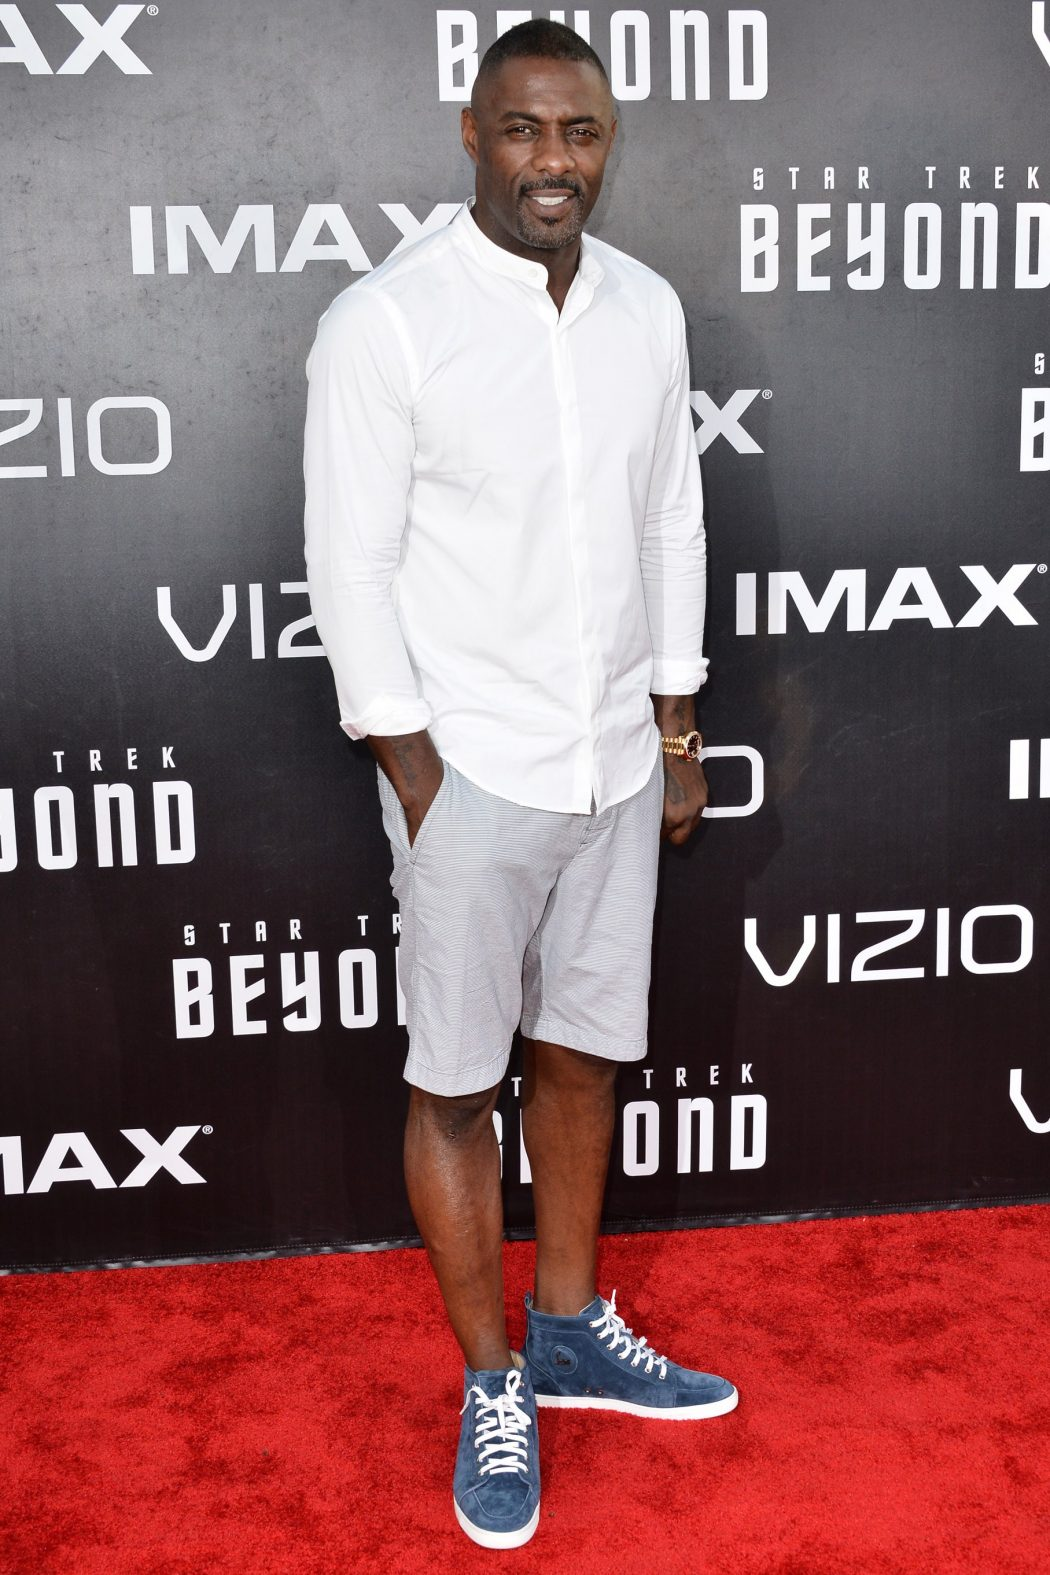 Idris-Elba-Style-2016-07-20-16 15 Male Celebrities Fashion Trends for Summer 2020